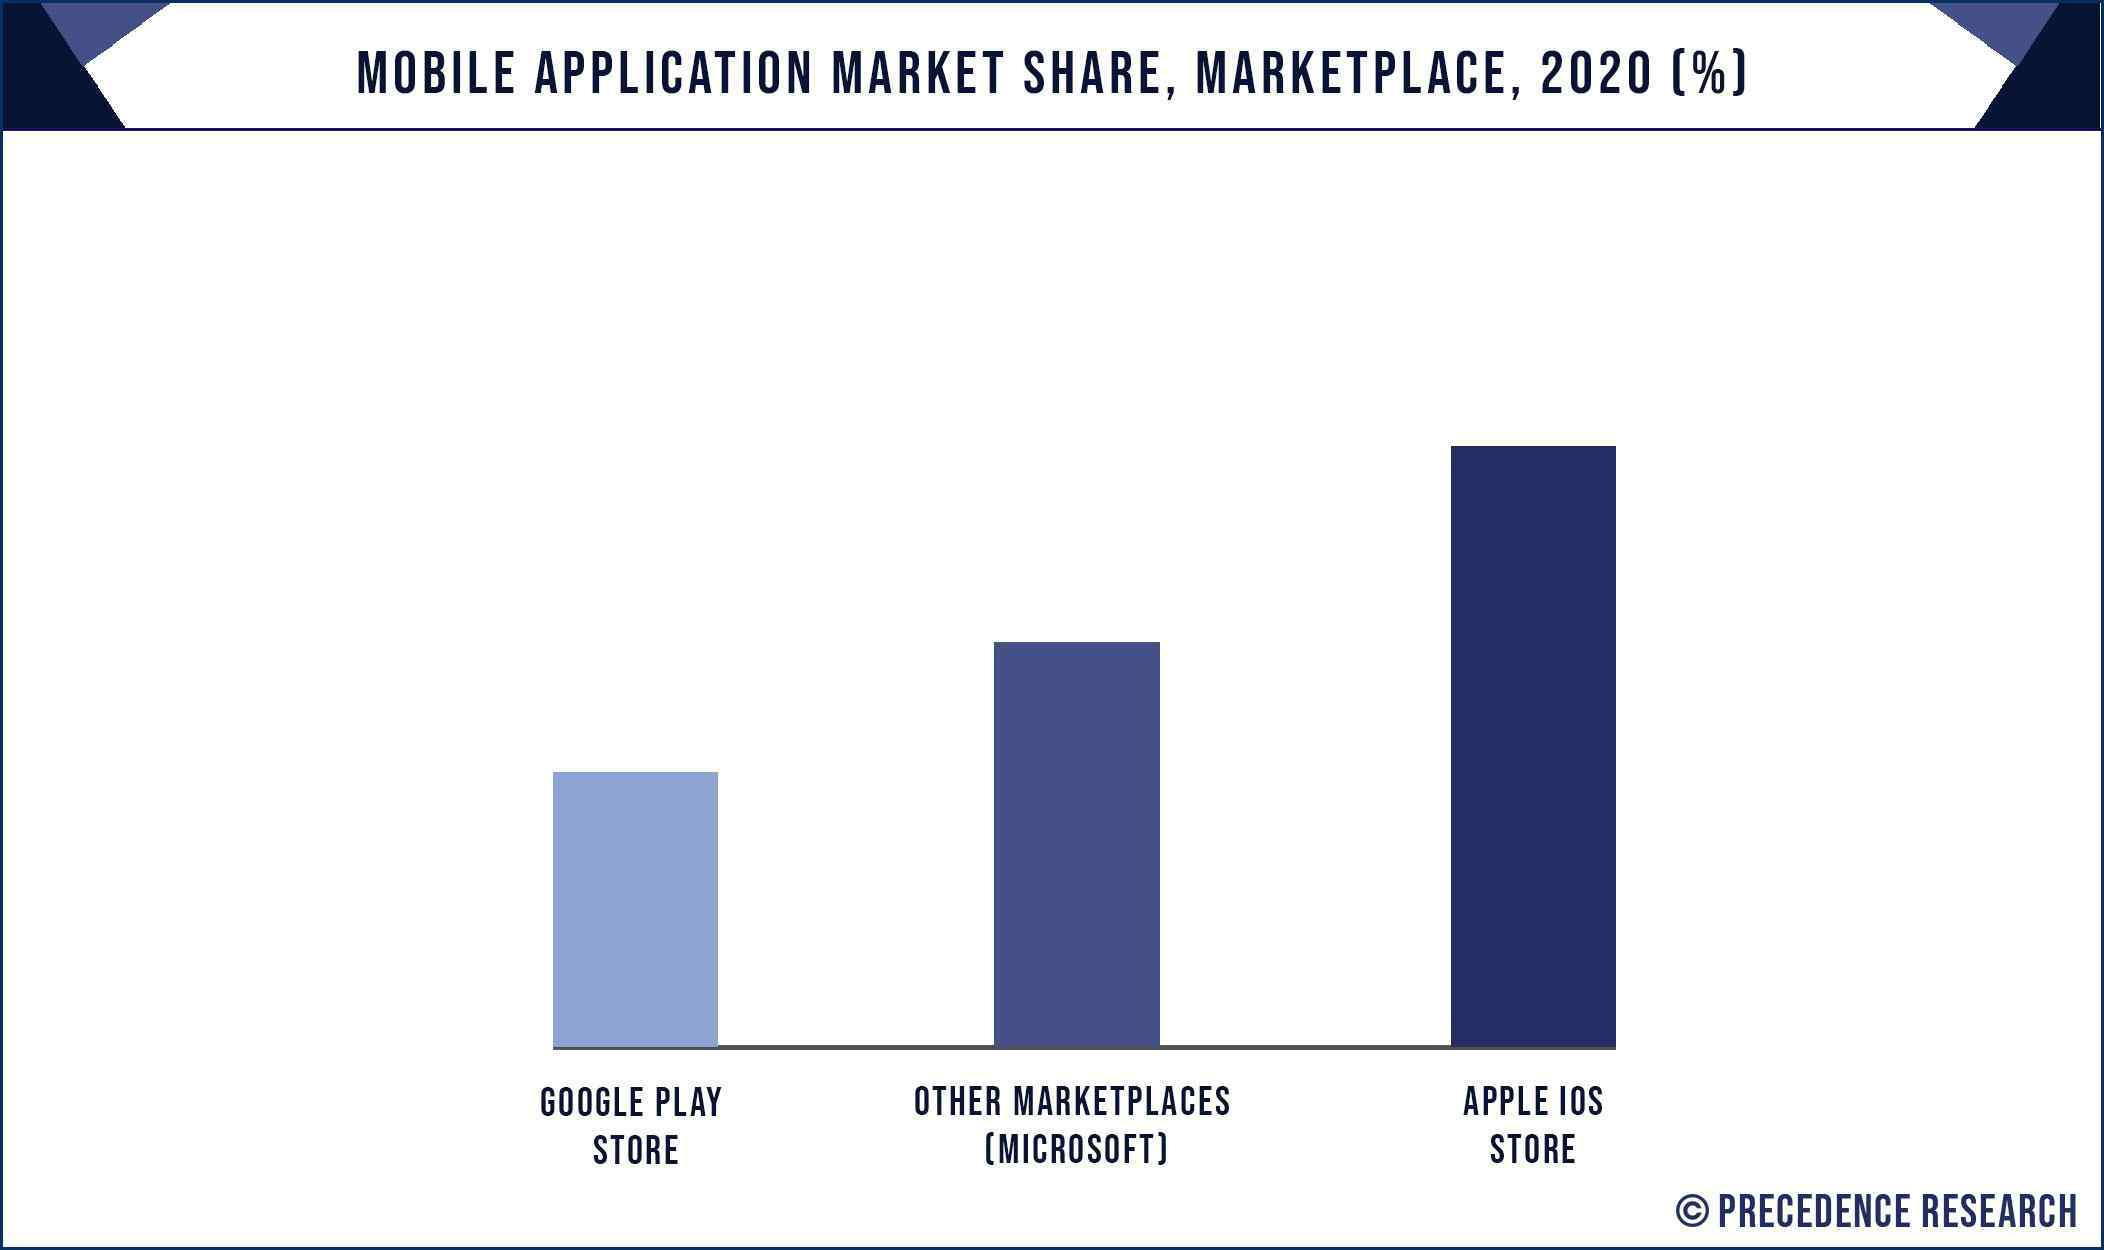 Mobile Application Market Share, By Marketplace, 2020 (%)